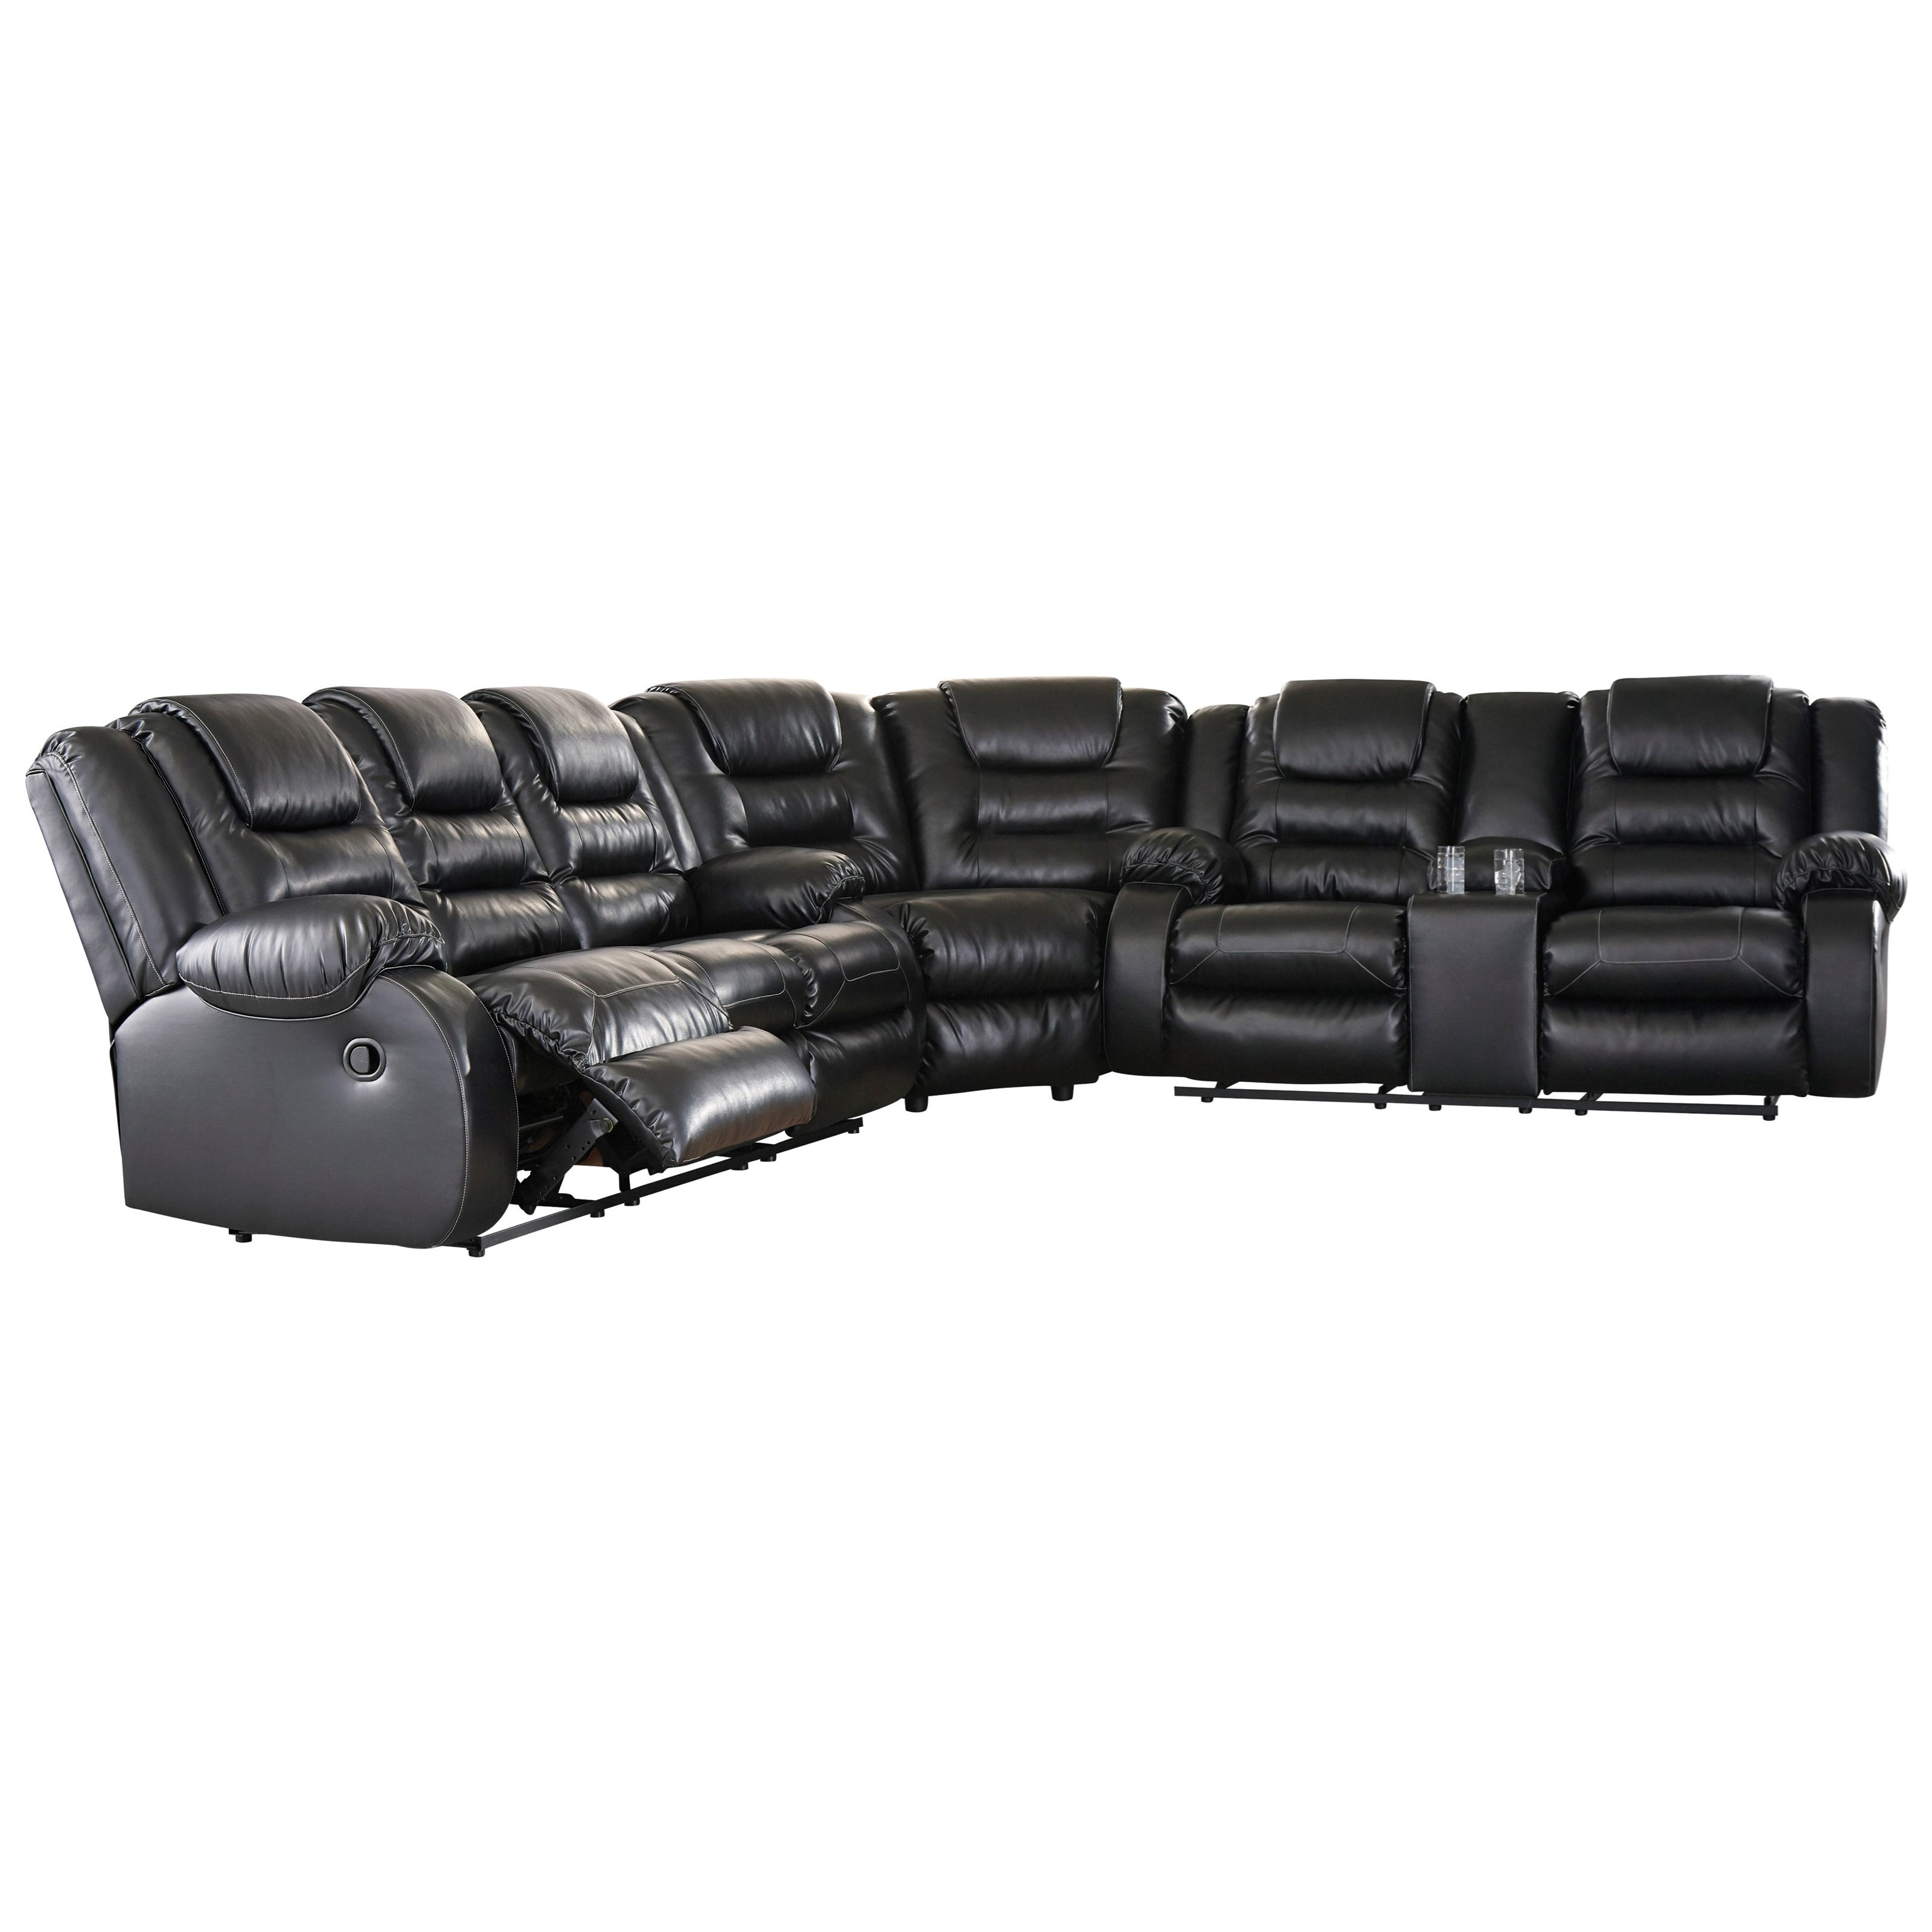 Vacherie Reclining Sectional Sofa by Signature Design by Ashley at Northeast Factory Direct